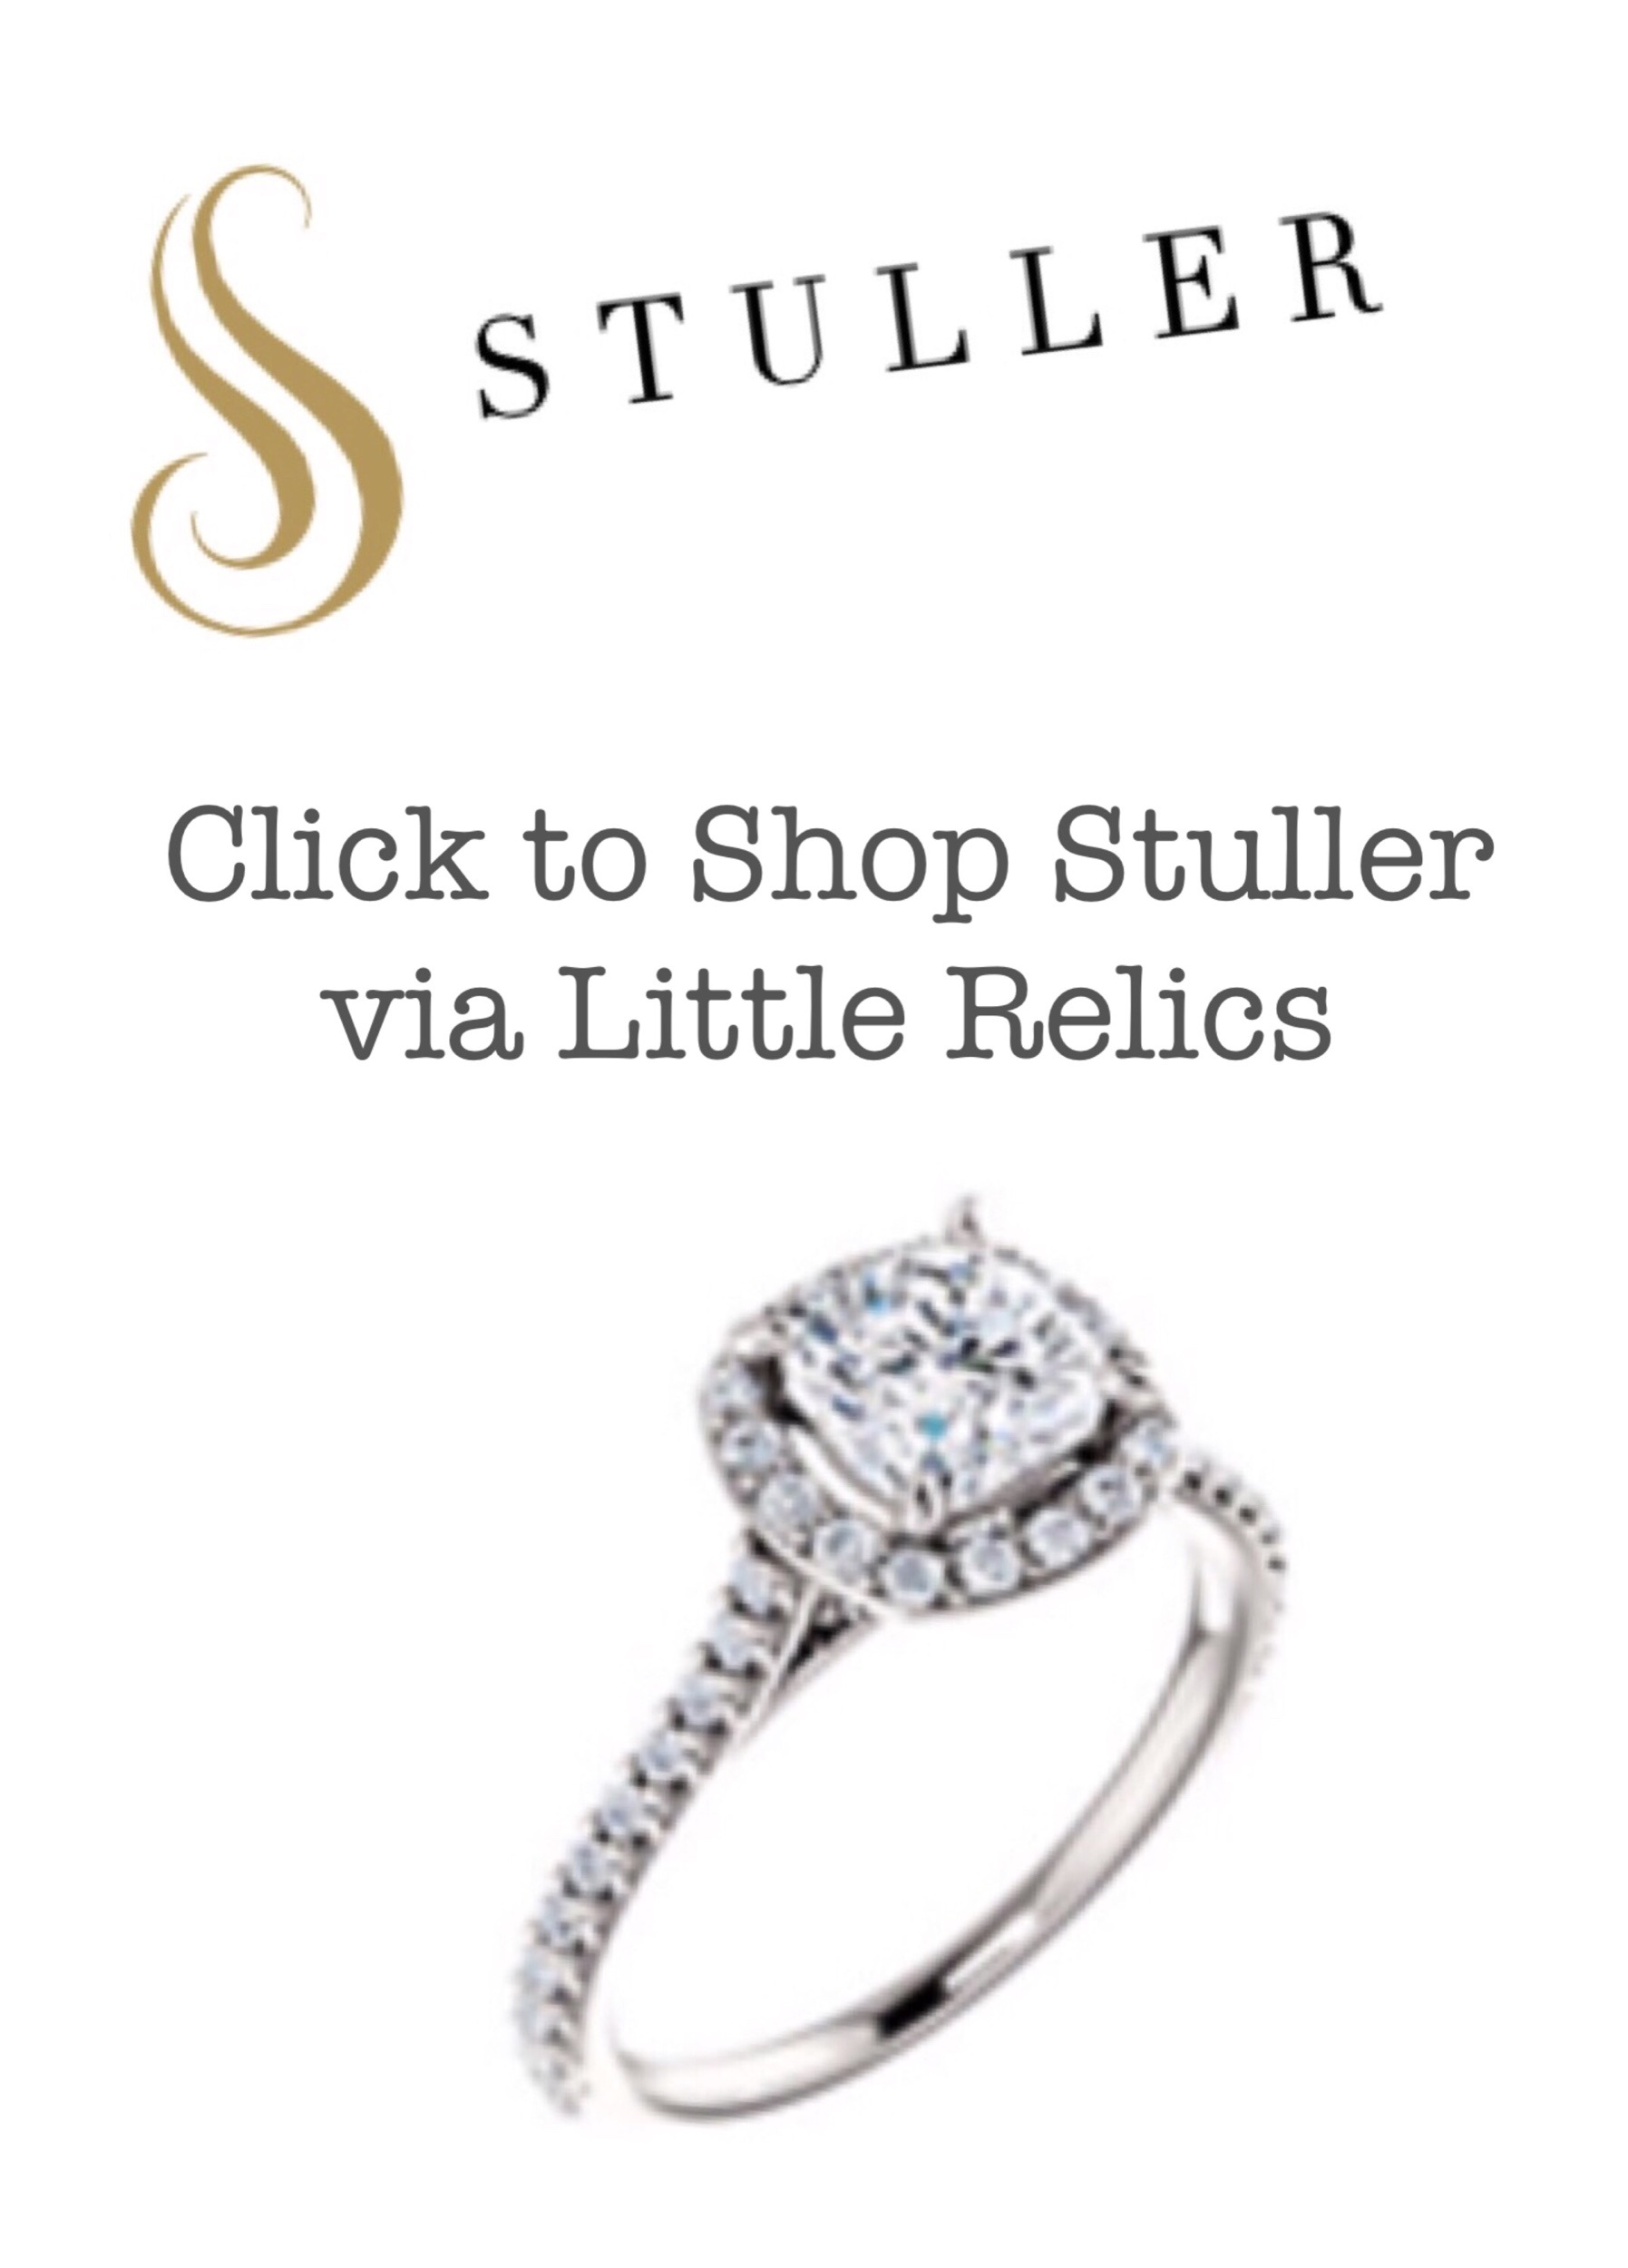 Clients may order settings, gemstones, product from Stuller to be shipped to Little Relics for pick-up. Payment is processed by Little Relics. Questions please call 916.346.4615